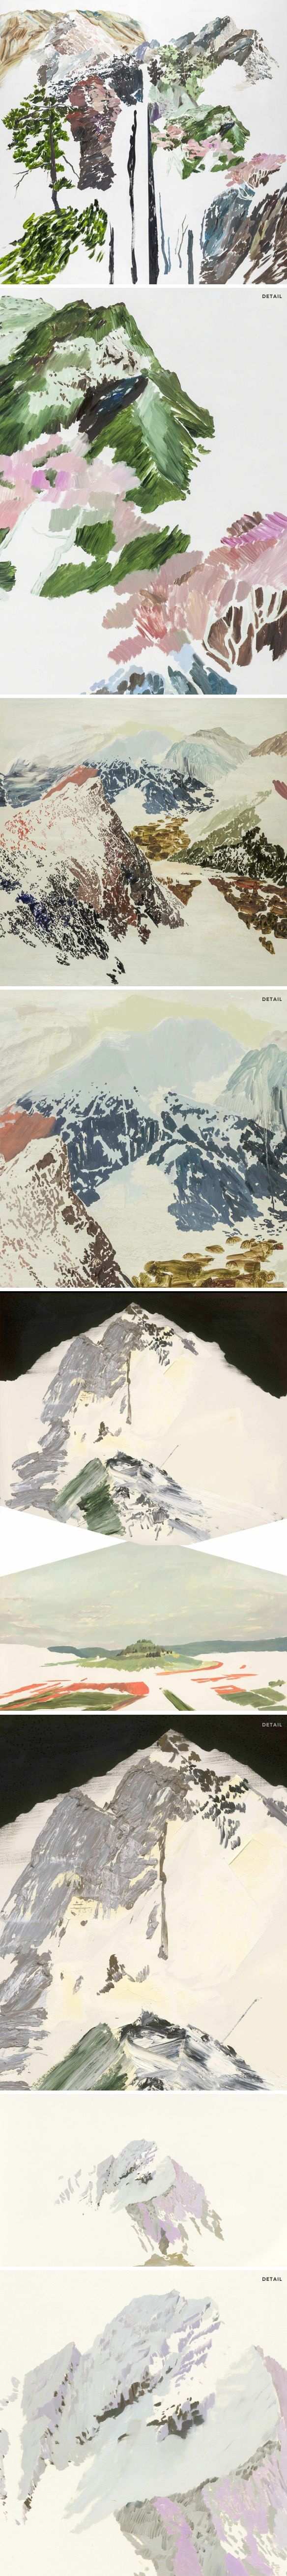 paintings by chih-hung kuo #mountains